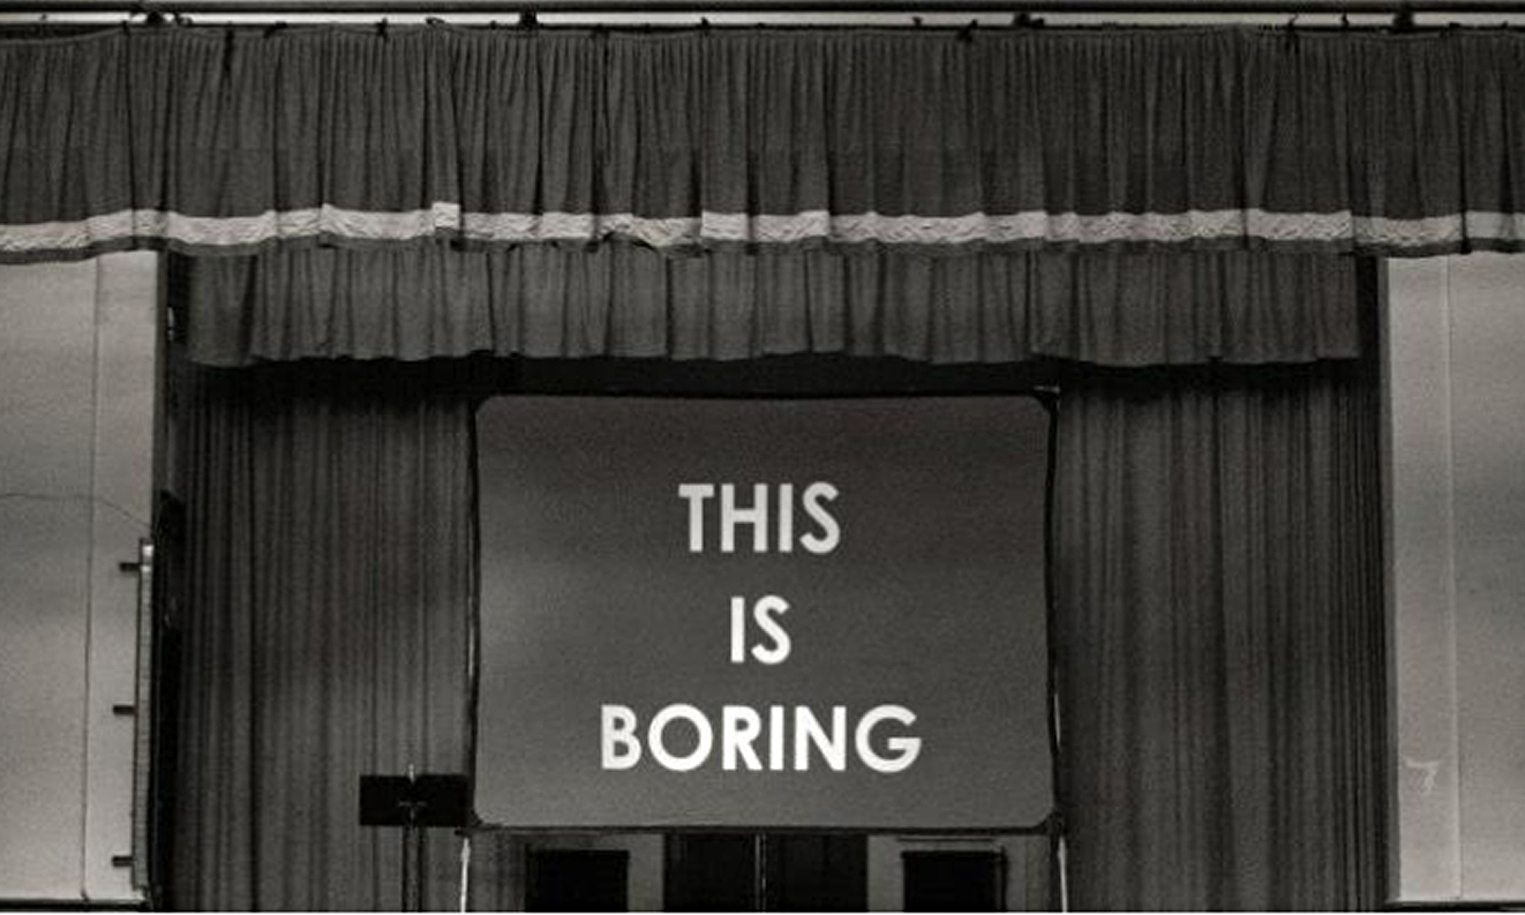 The Boring Conference The Fascinating World Of The